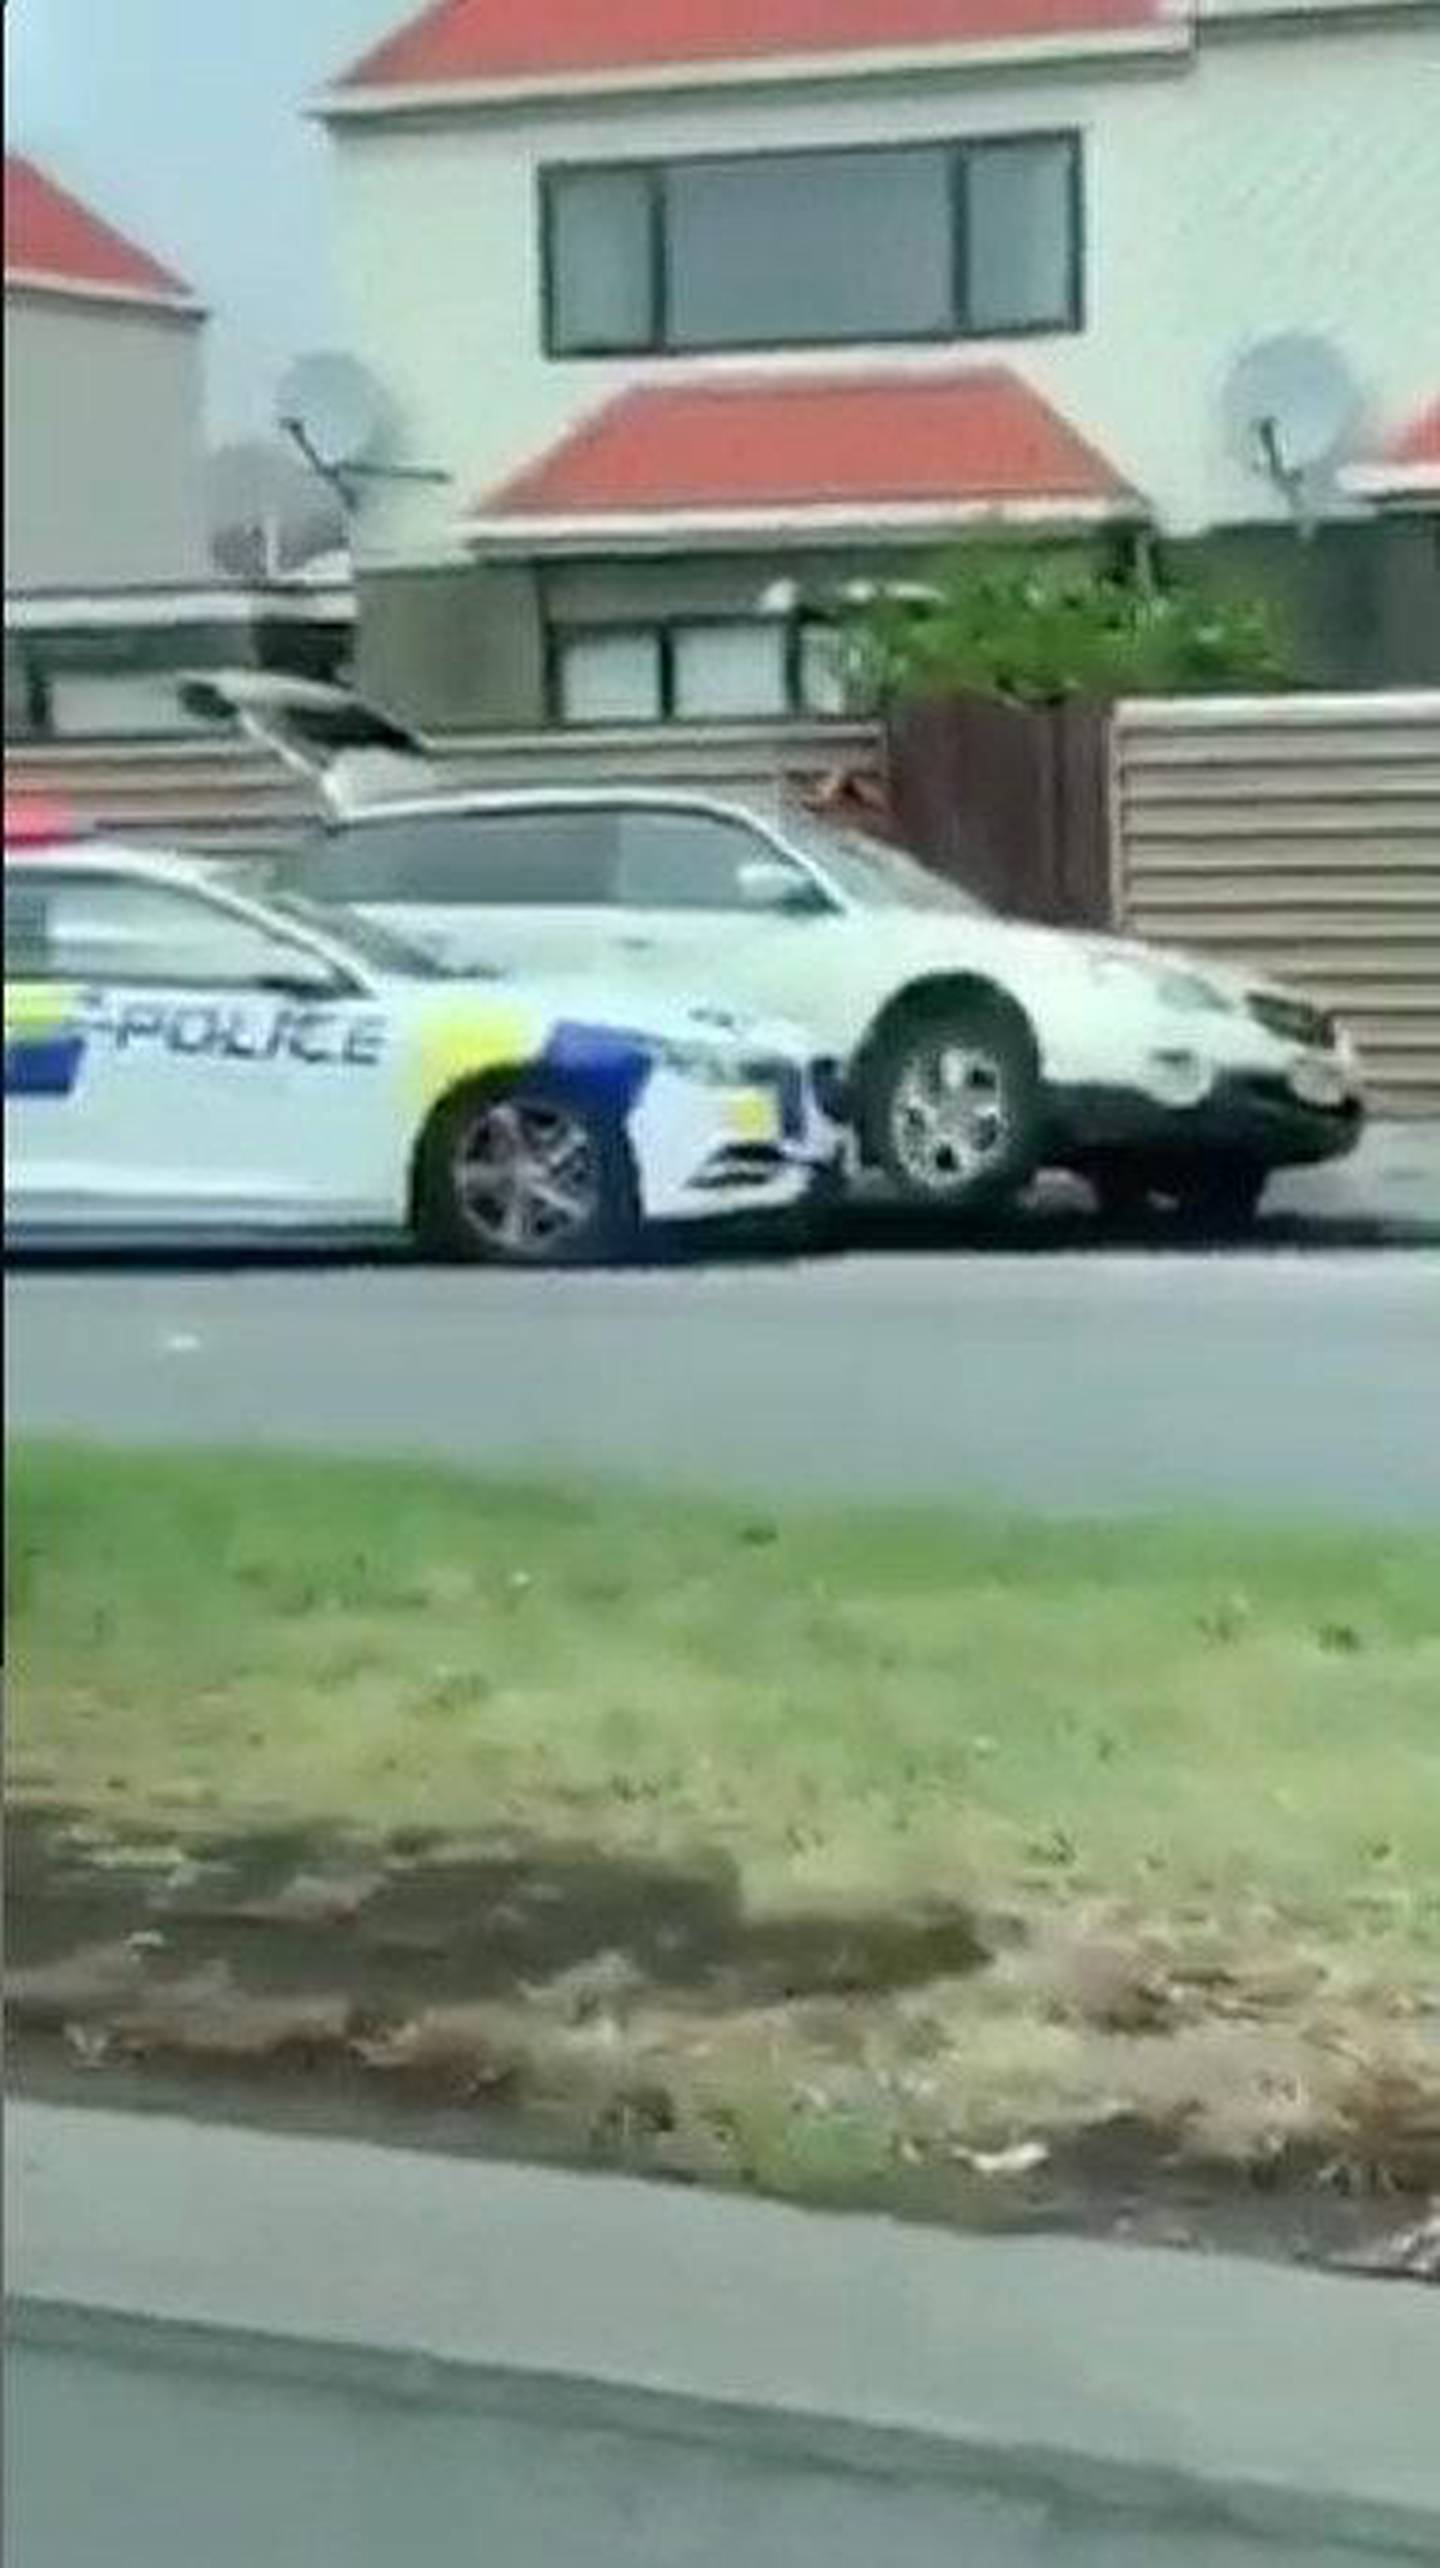 """A police car blocks the car of a suspect following shootings at two mosques in Christchurch, New Zealand March 15, 2019, in this still image obtained from a social media video. Courtesy of Twitter @ROBERT22041432/Social Media via REUTERS. ATTENTION EDITORS - THIS IMAGE HAS BEEN SUPPLIED BY A THIRD PARTY. MANDATORY CREDIT """"TWITTER / @ROBERT22041432"""". NO RESALES. NO ARCHIVES."""